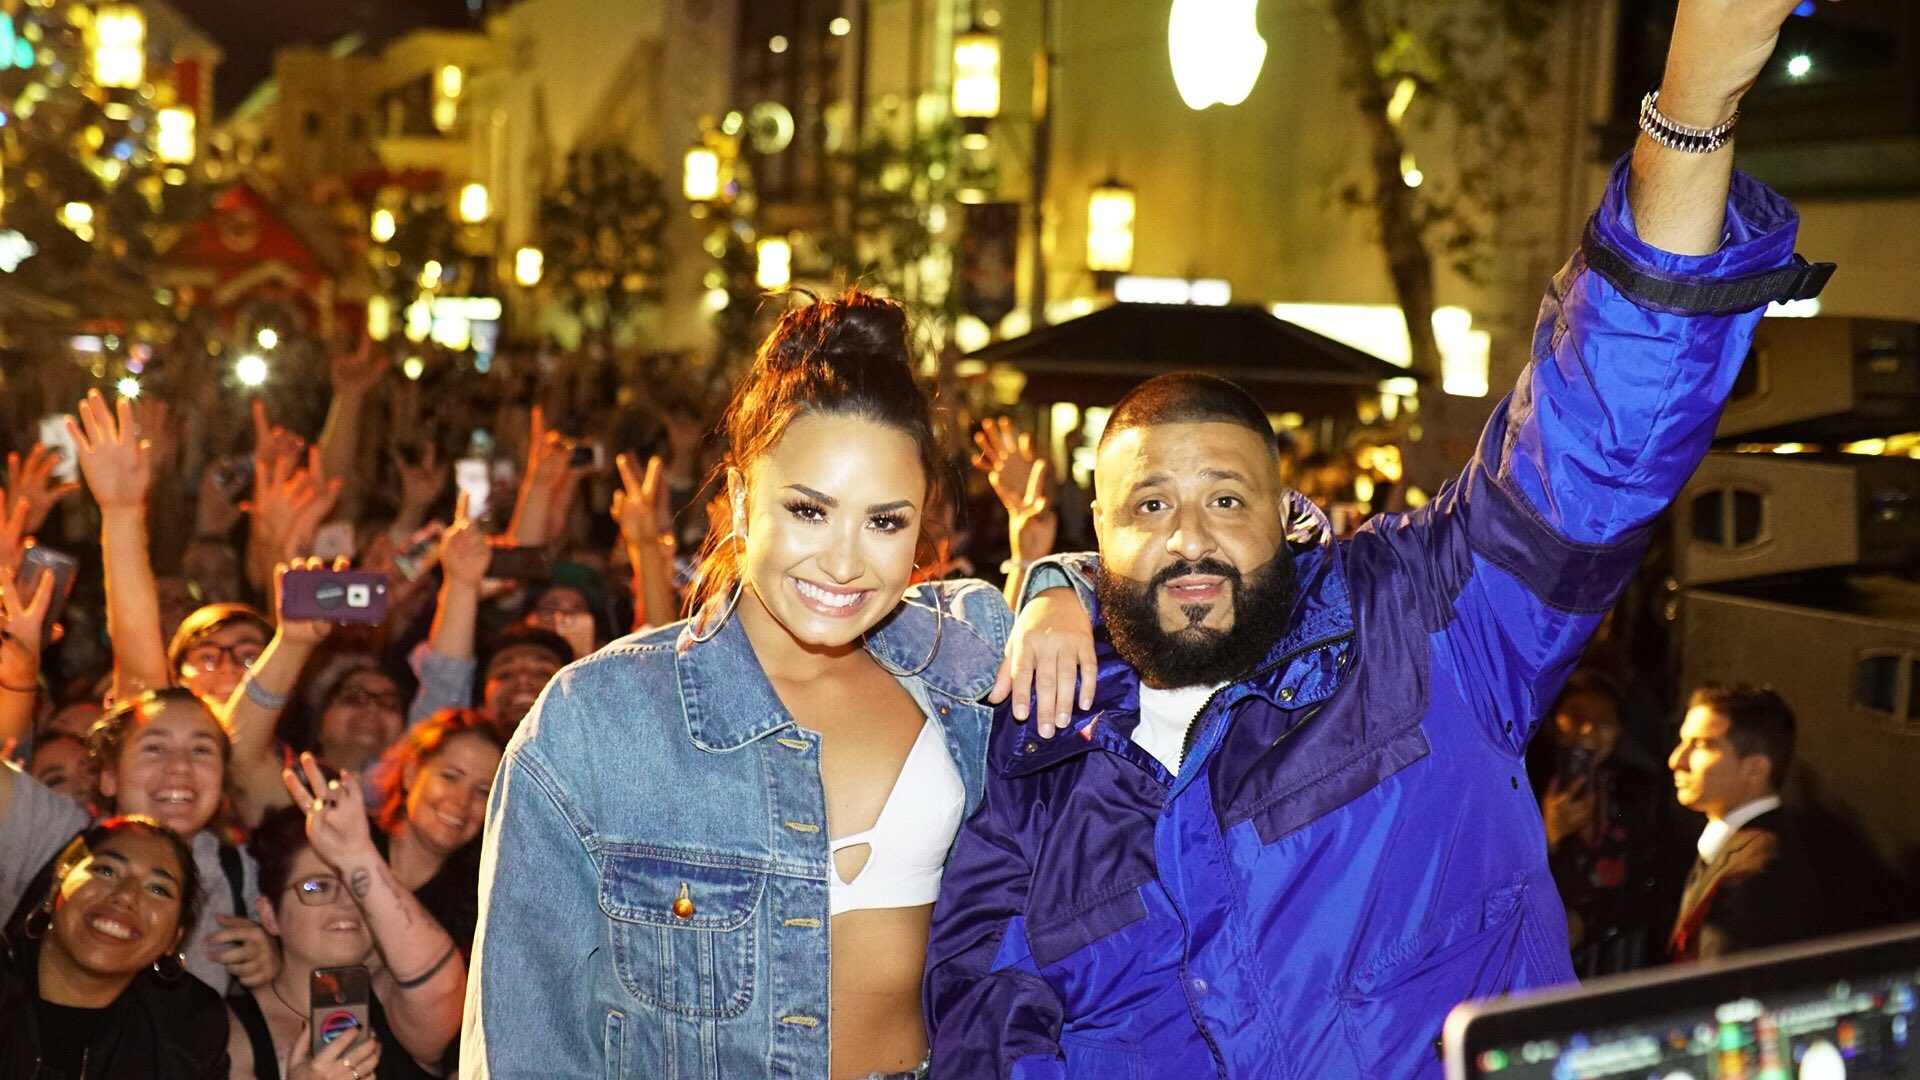 Thank you guys for coming out to @thegrovela �� Always love getting to see my Lovatics. @djkhaled #demixkhaled https://t.co/WOIxcC8yD4